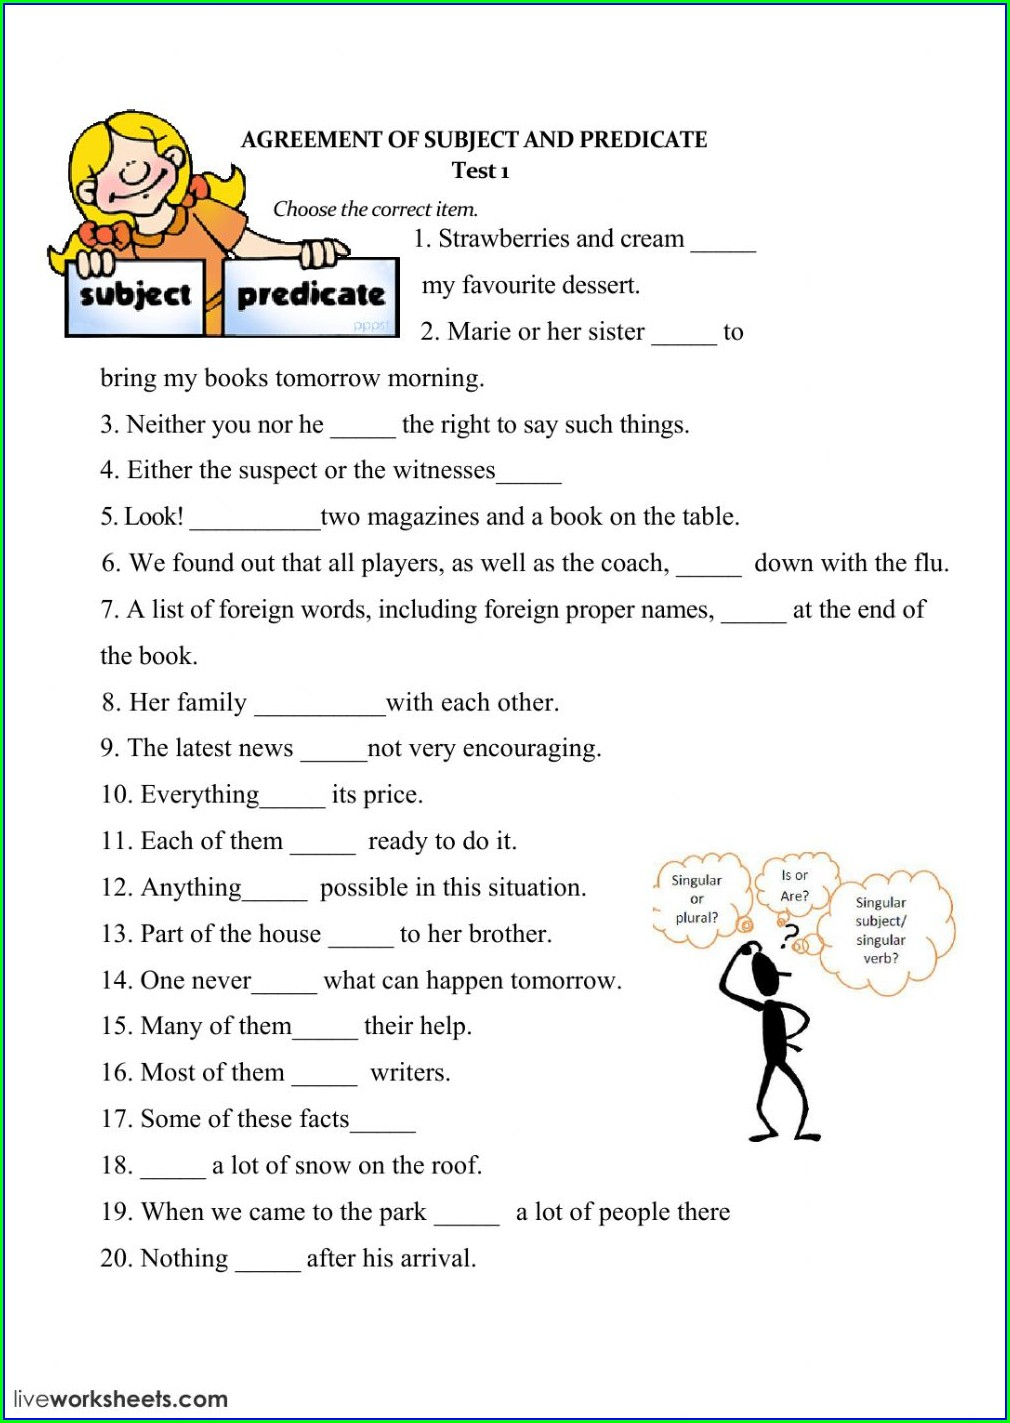 Subject Verb Agreement Exercises With Answers For Class 9